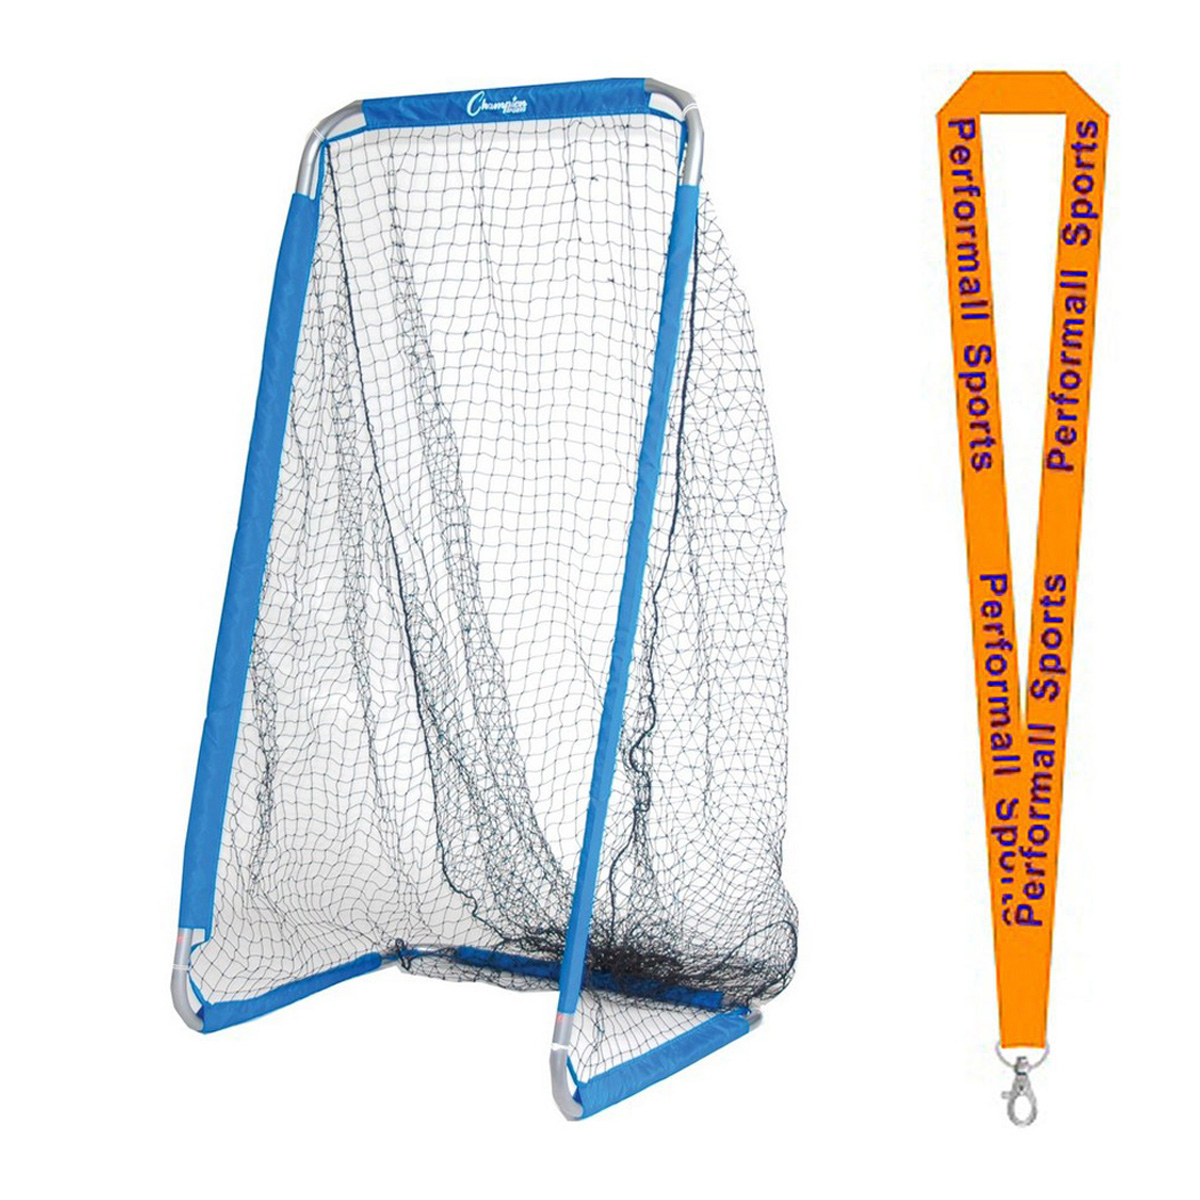 Champion Sports Bundle: Football Kicking Screen Blue / White with 1 Performall Lanyard FKPRO-1P